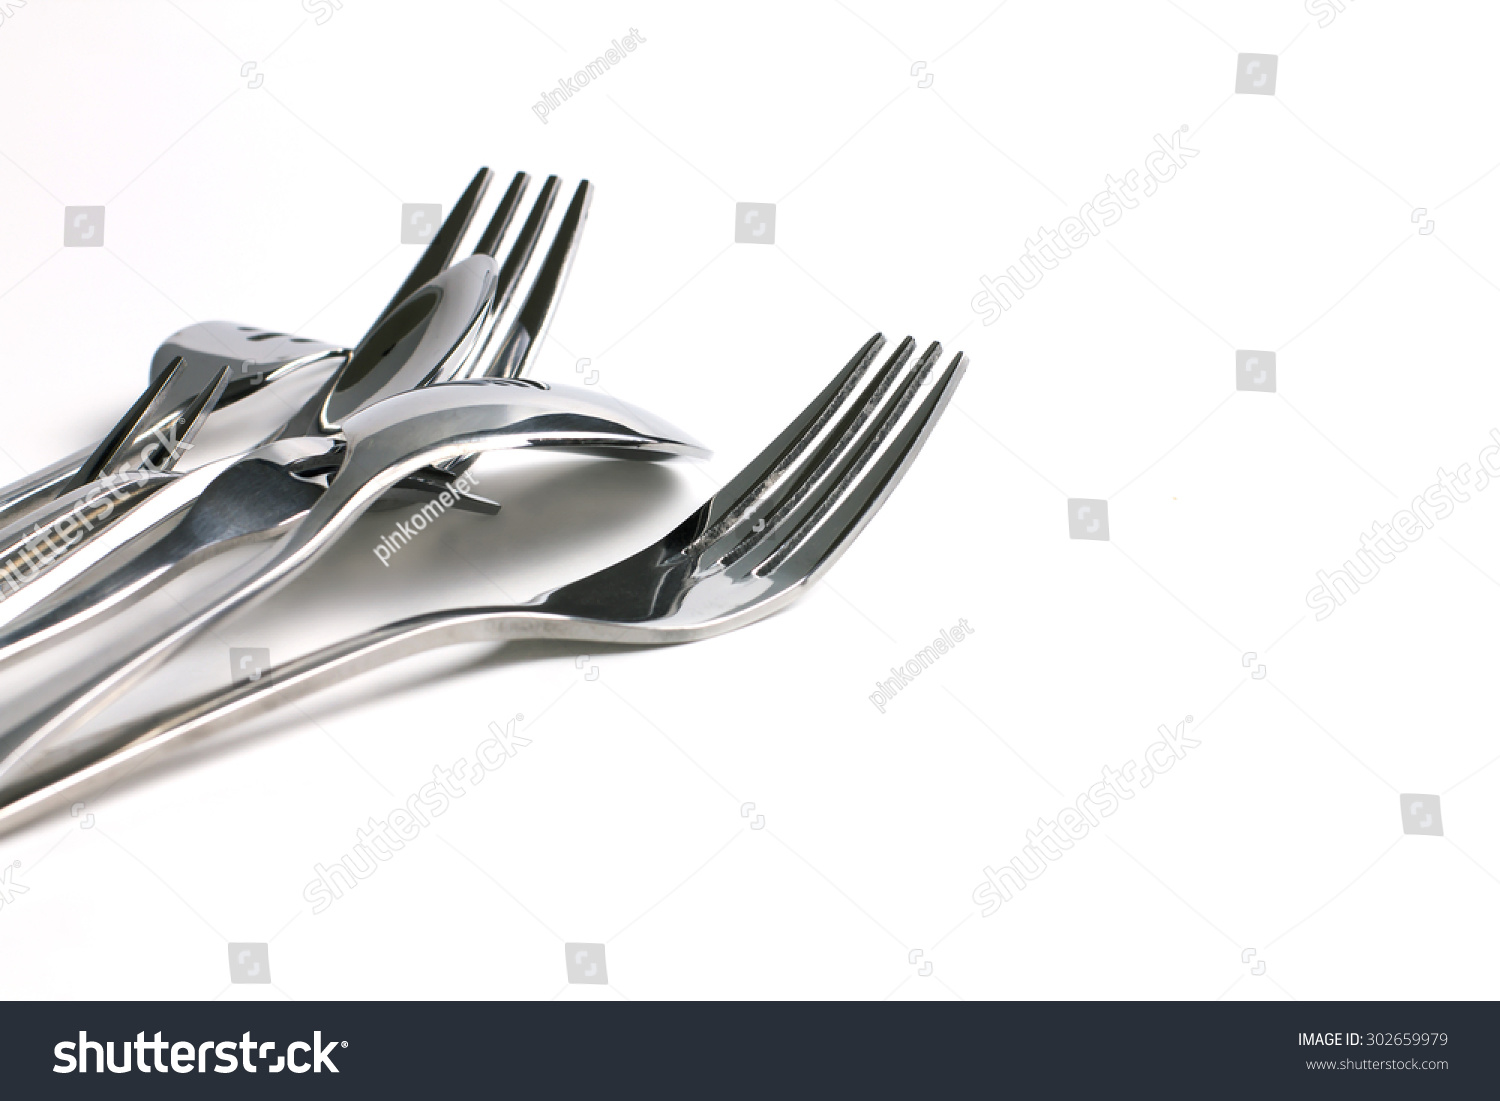 Close Up Dinning The Silverware Fork Spoon On White Background And